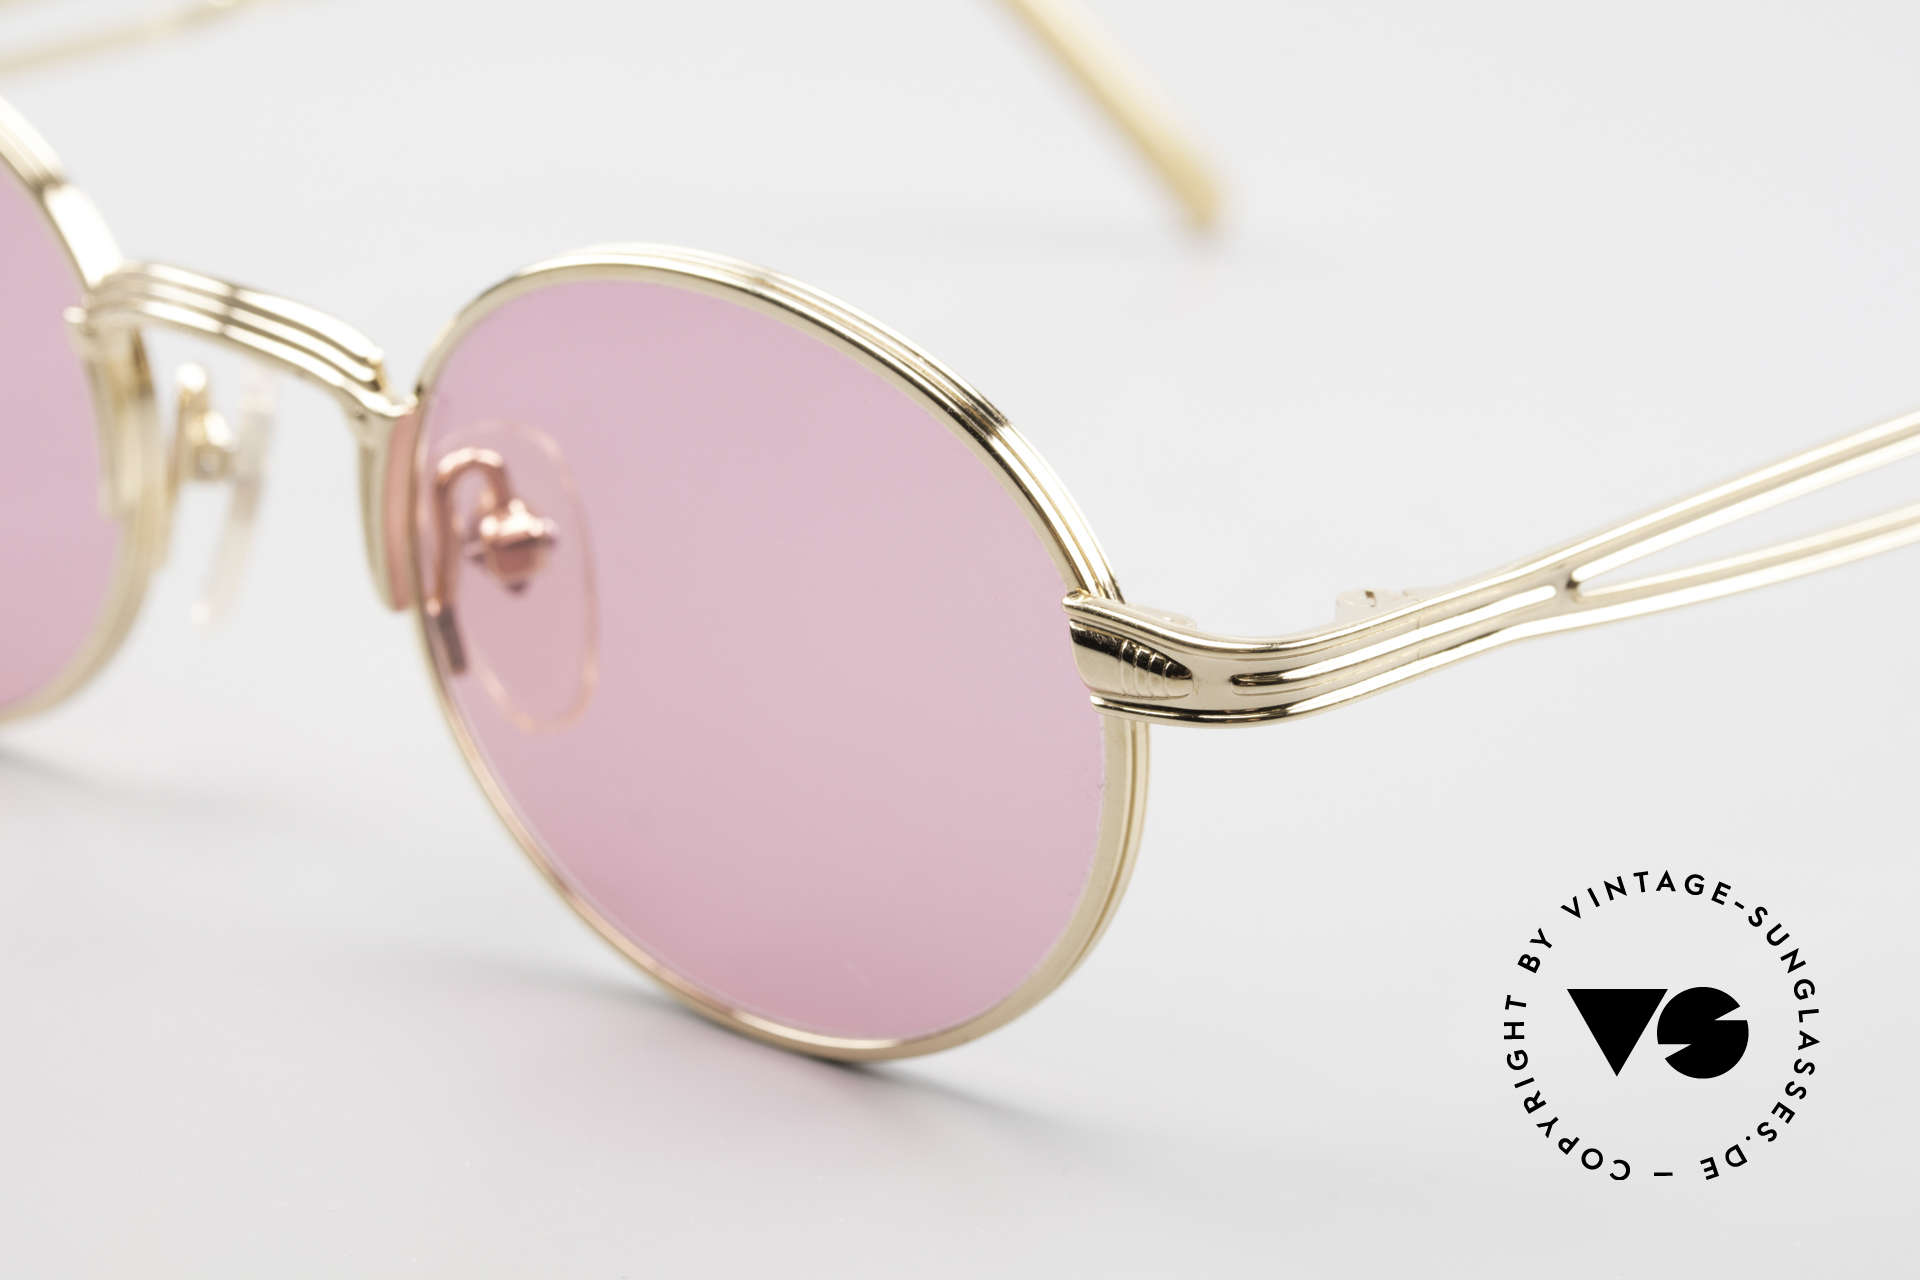 Jean Paul Gaultier 55-7107 Pink Round Glasses Gold Plated, real designer piece in TOP quality, (made in Japan), Made for Men and Women